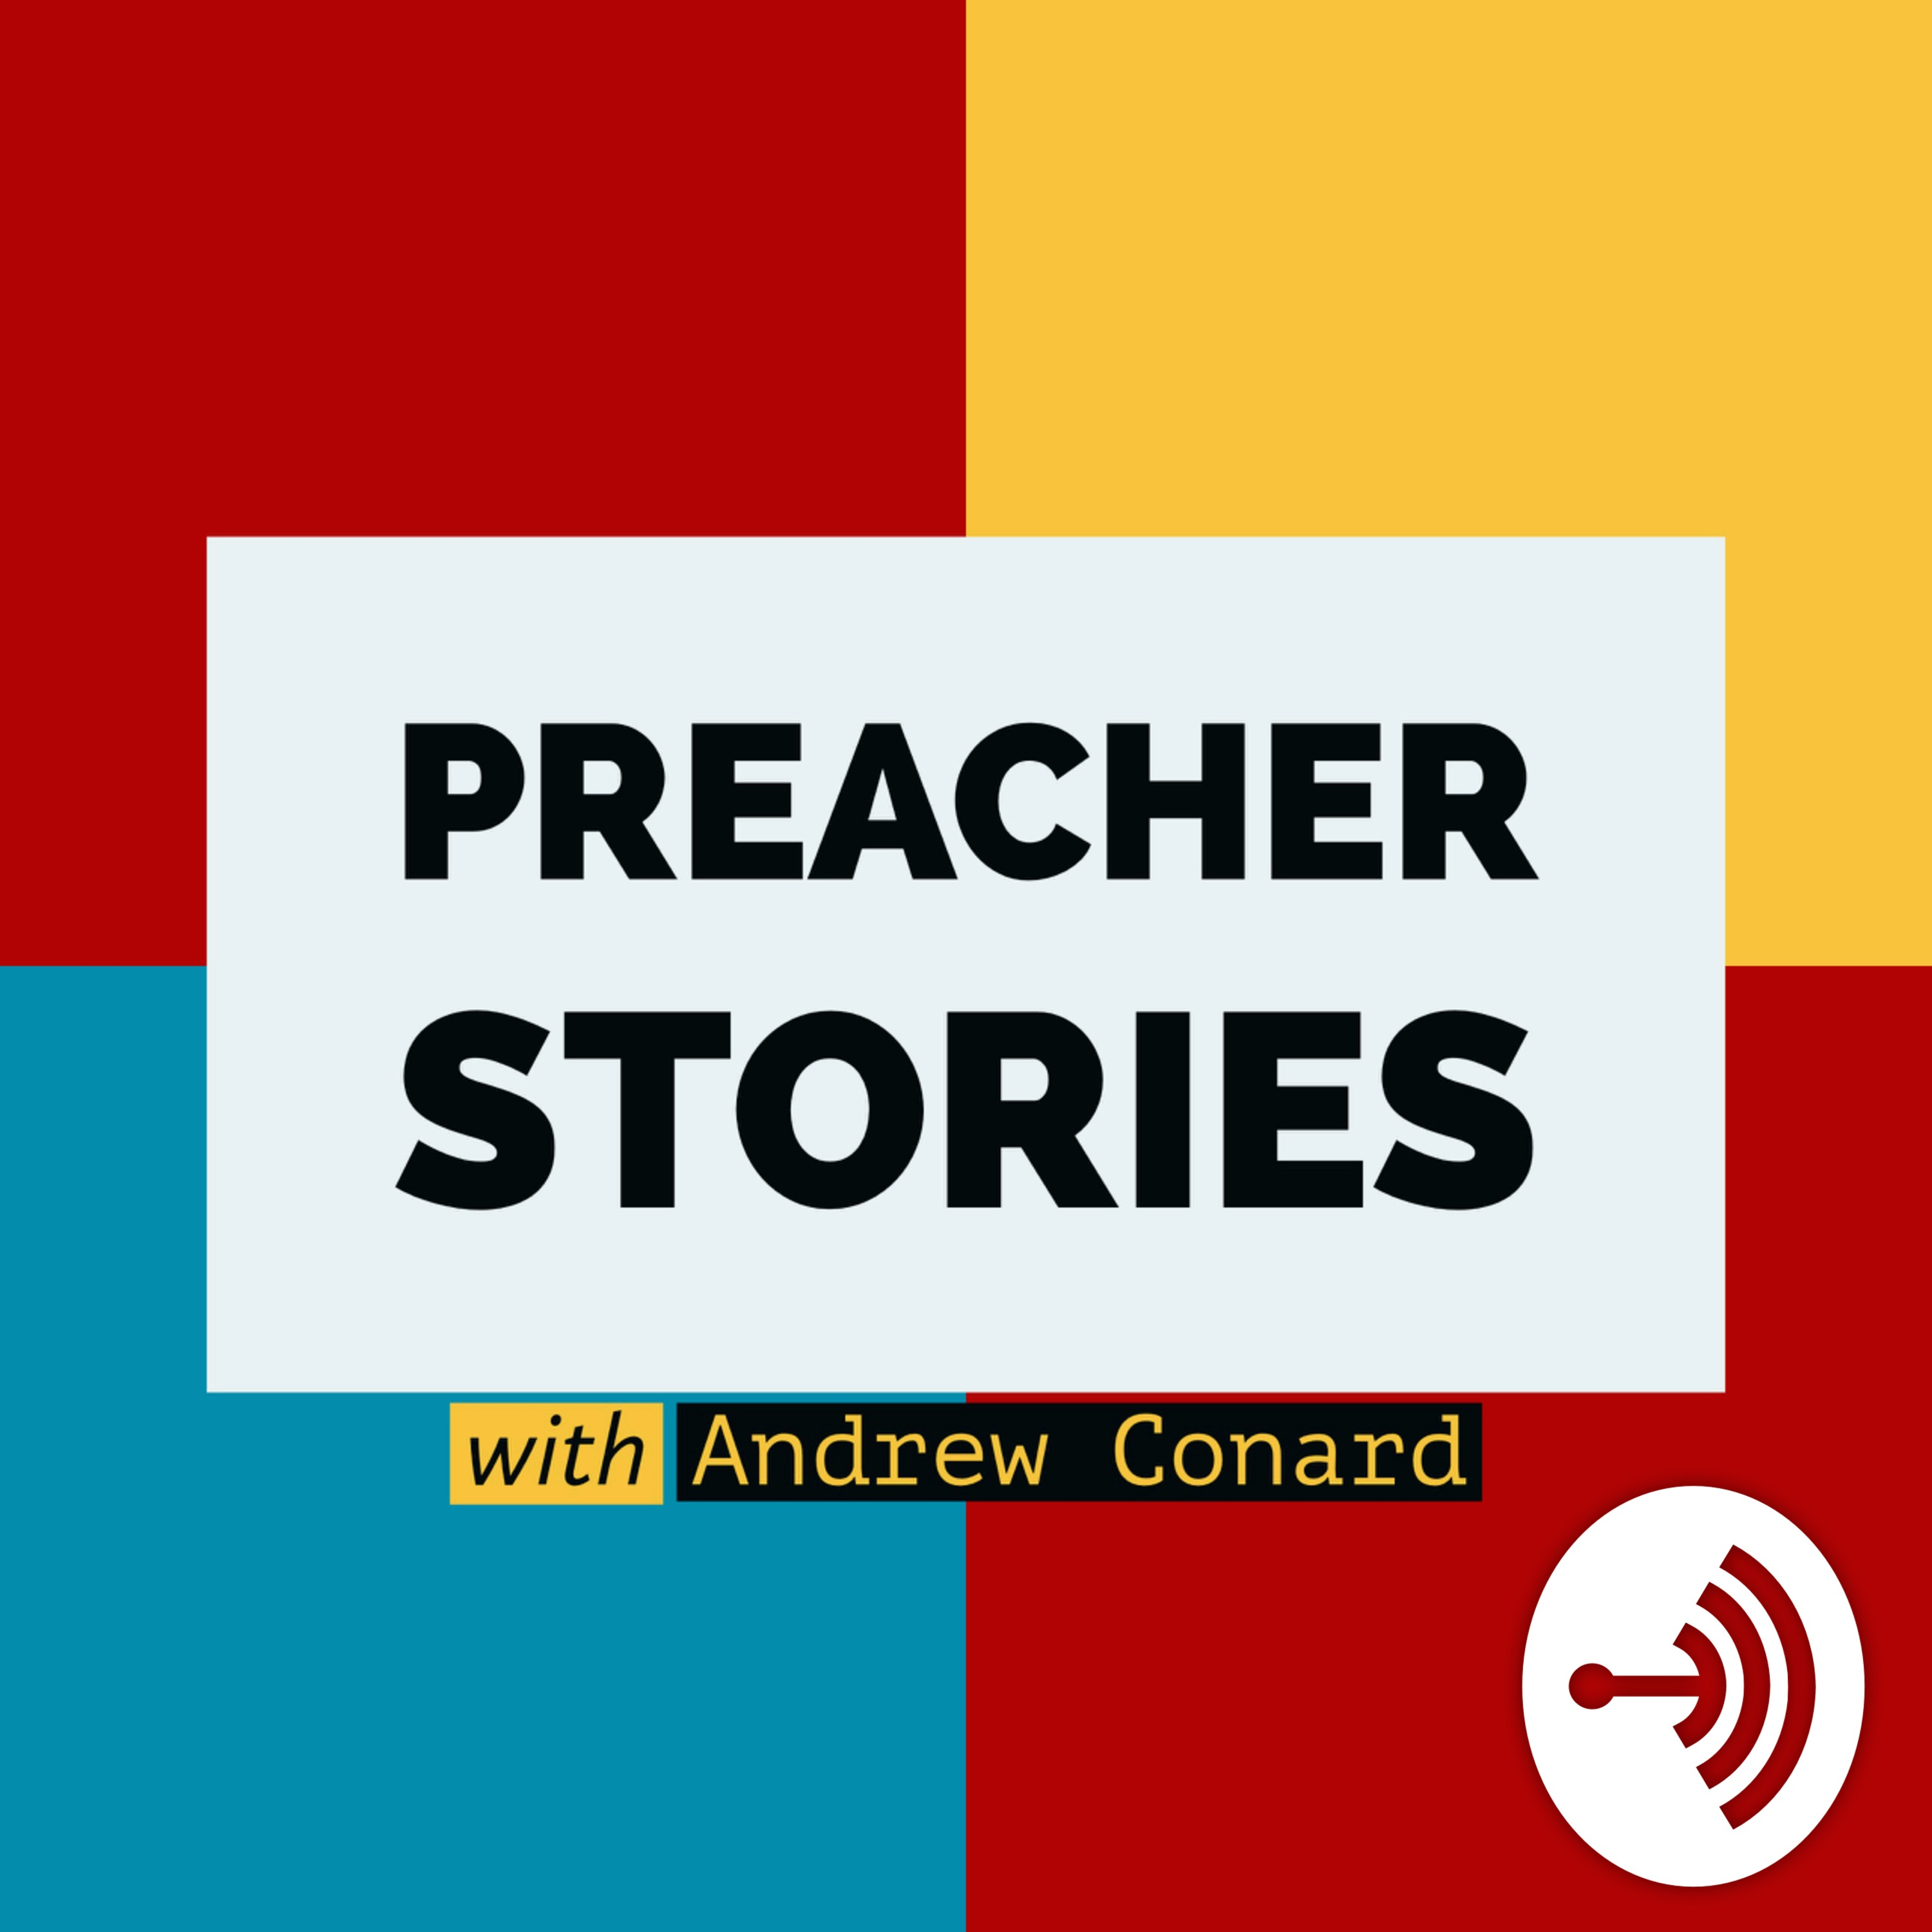 Preacher Stories with Andrew Conard